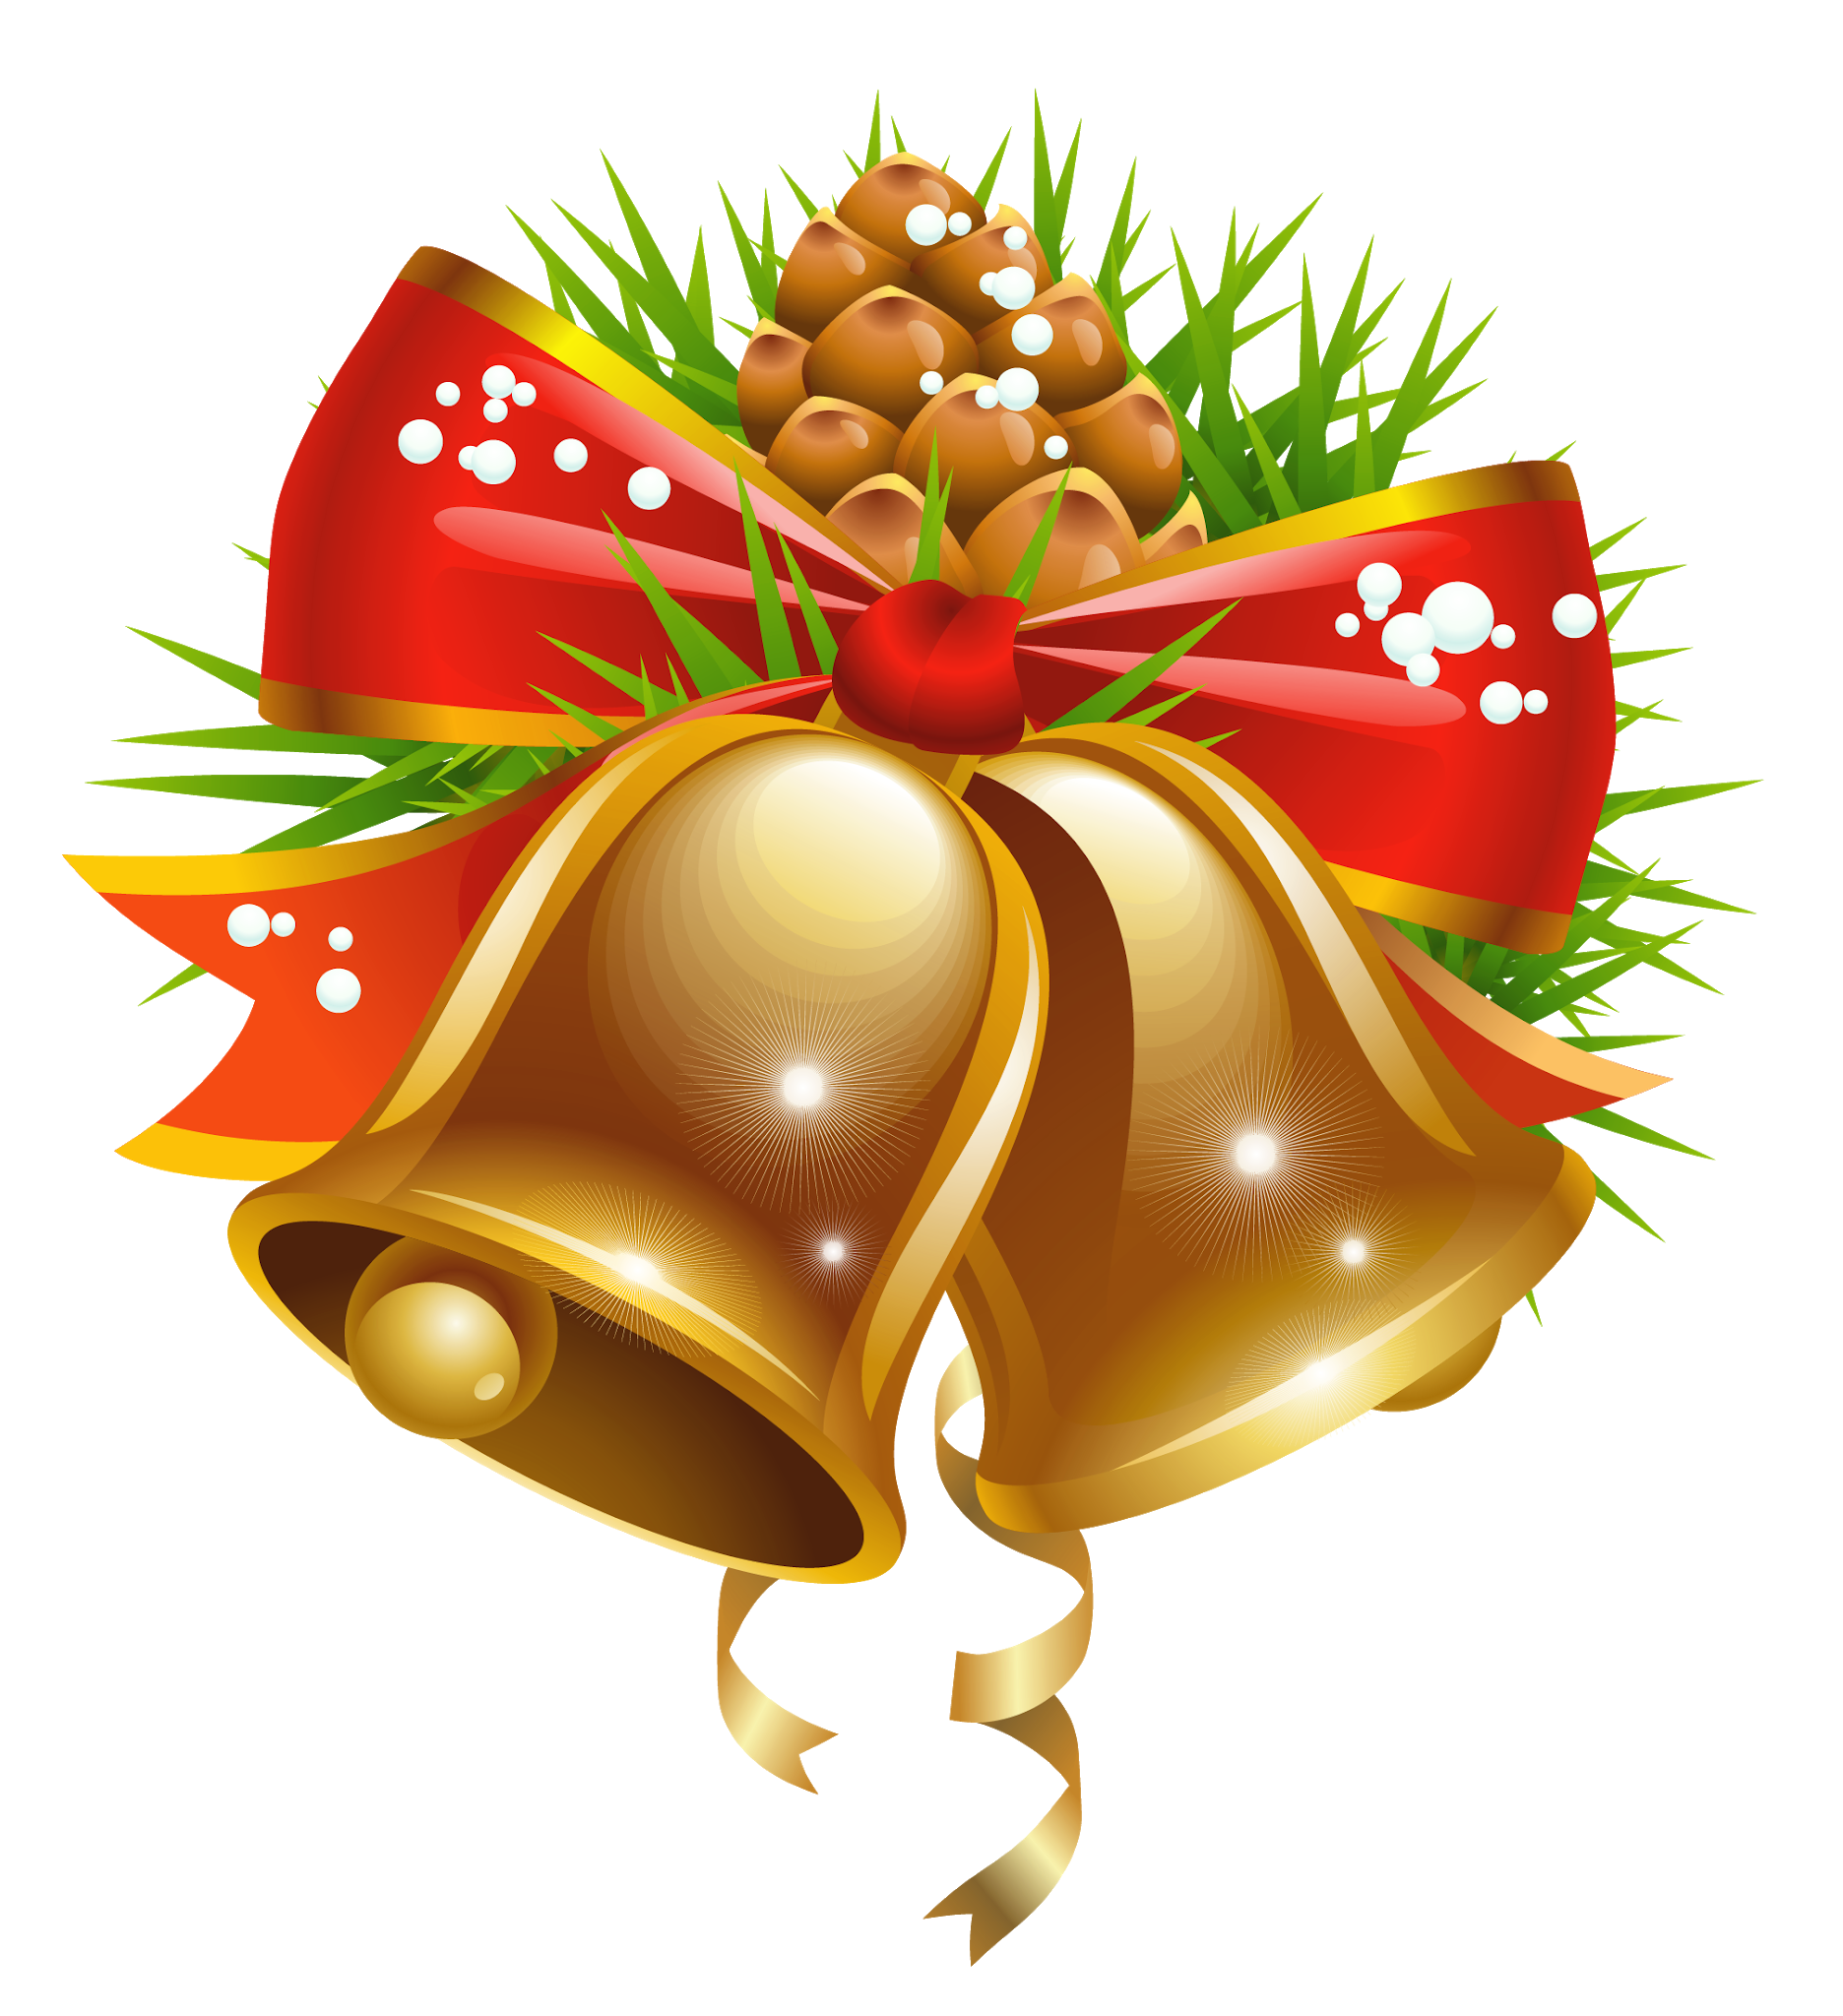 Christmas Bells And Ornaments Transparent Png Clip Art Christmas Png Image Clipart Christmas Bells Christmas Cards To Make Christmas Clipart